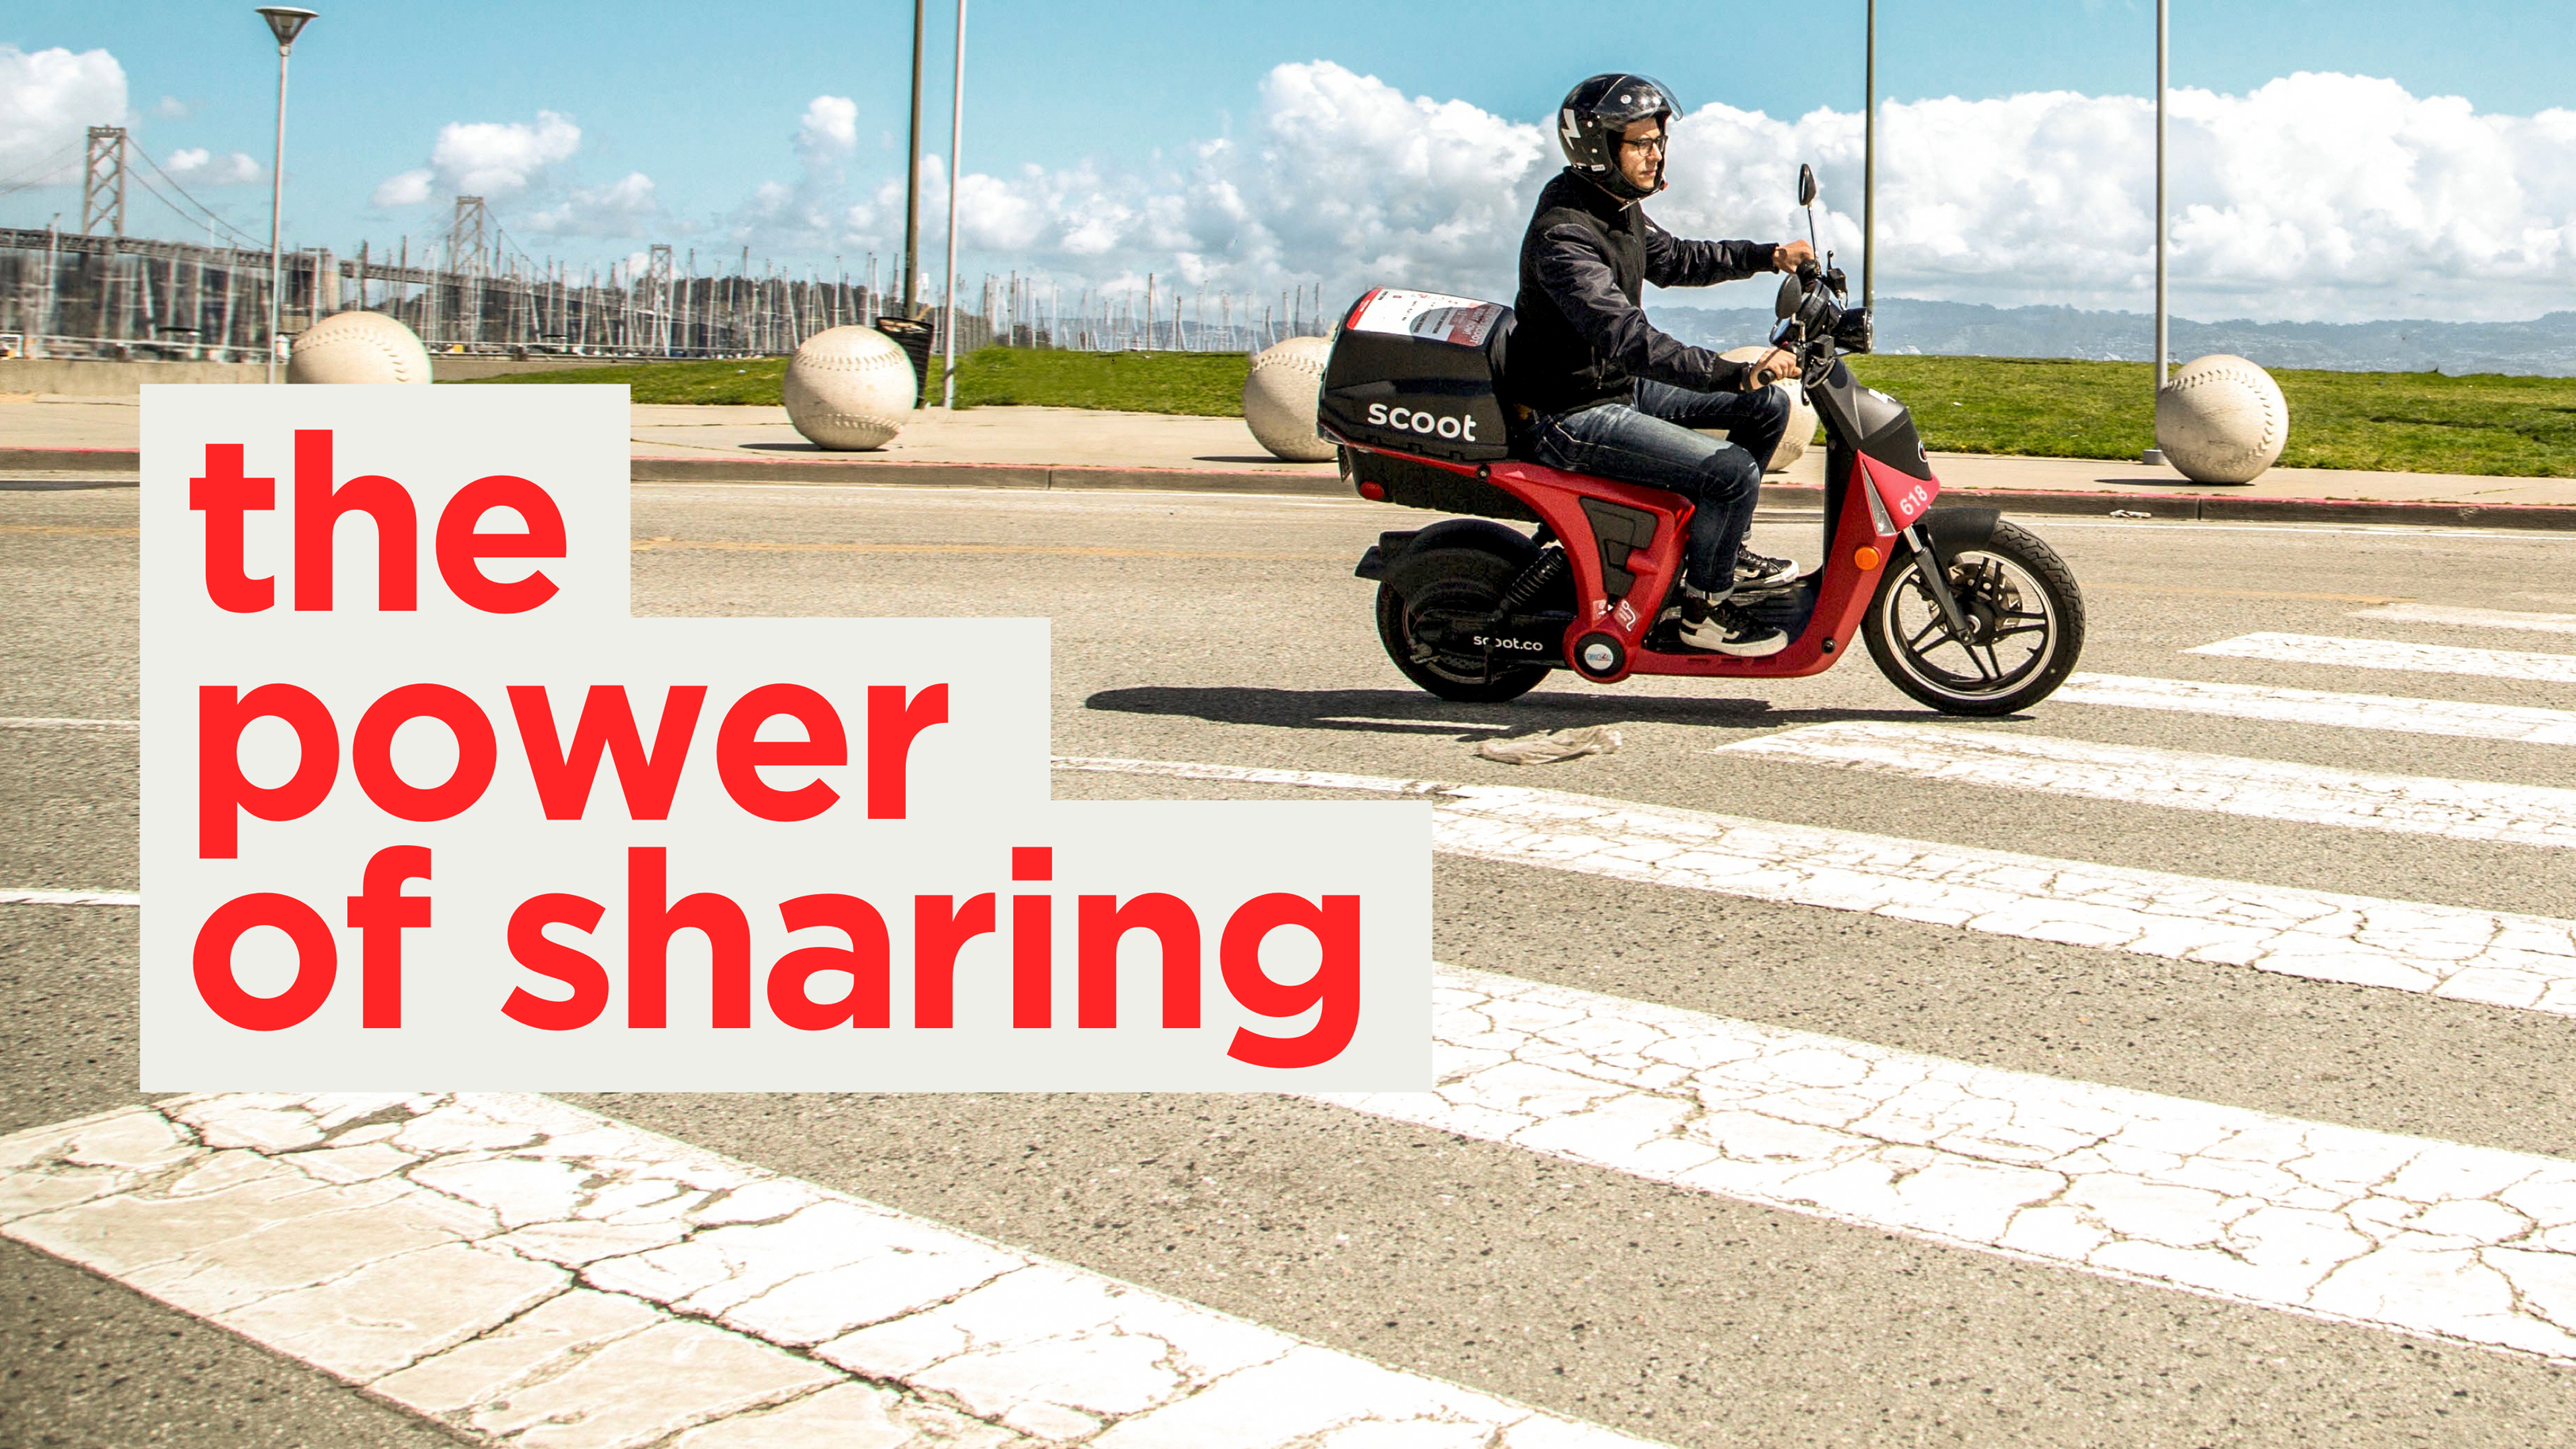 """A person making a slight turn on a scooter with typography stating """"the power of sharing"""" imposed on top of the image"""